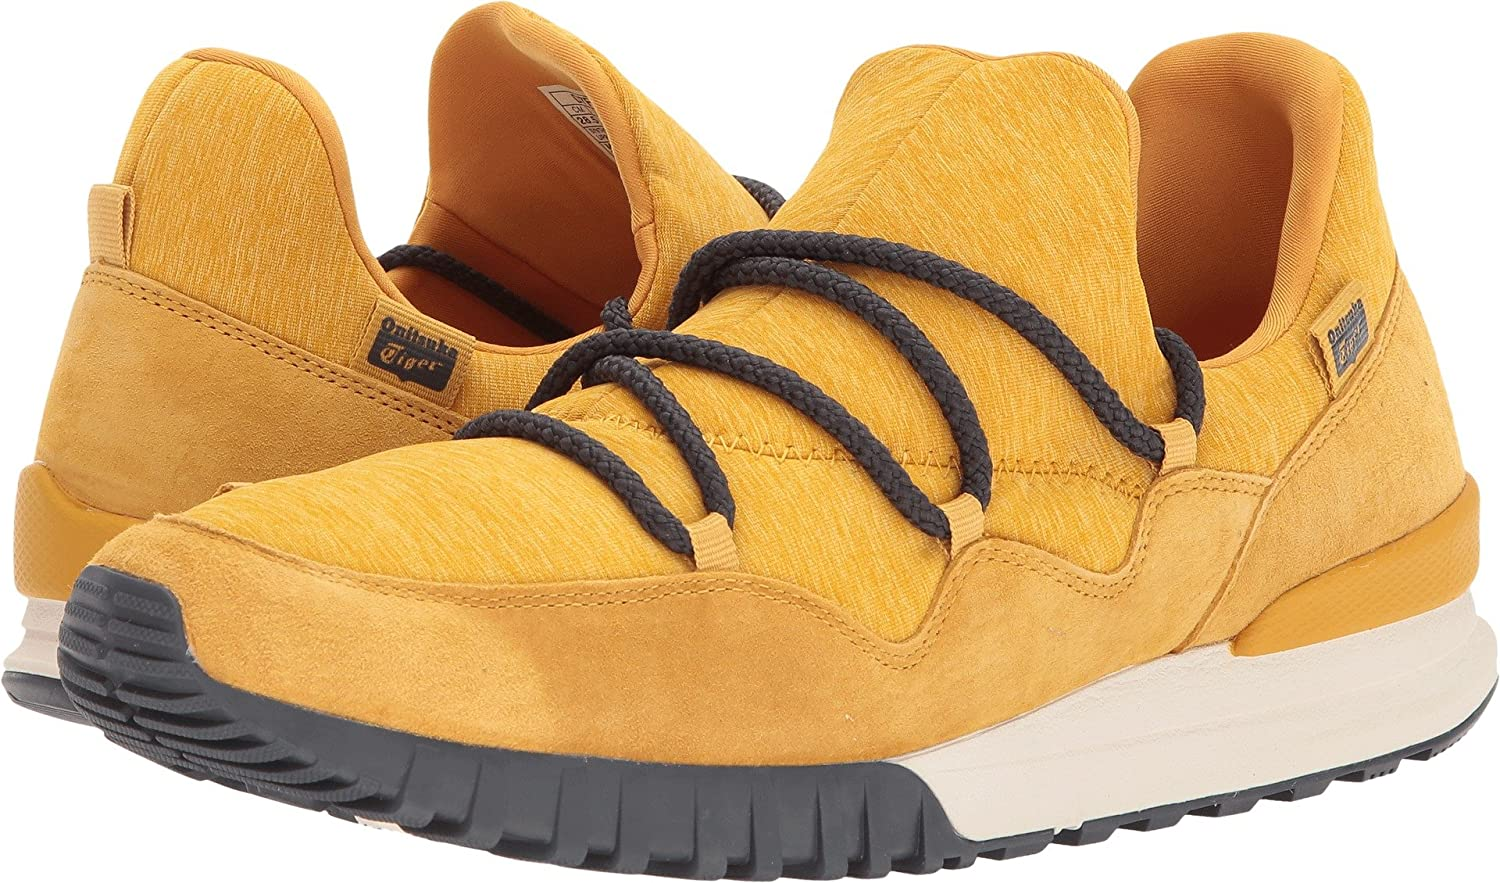 Onitsuka Tiger by Asics Unisex Monte Creace